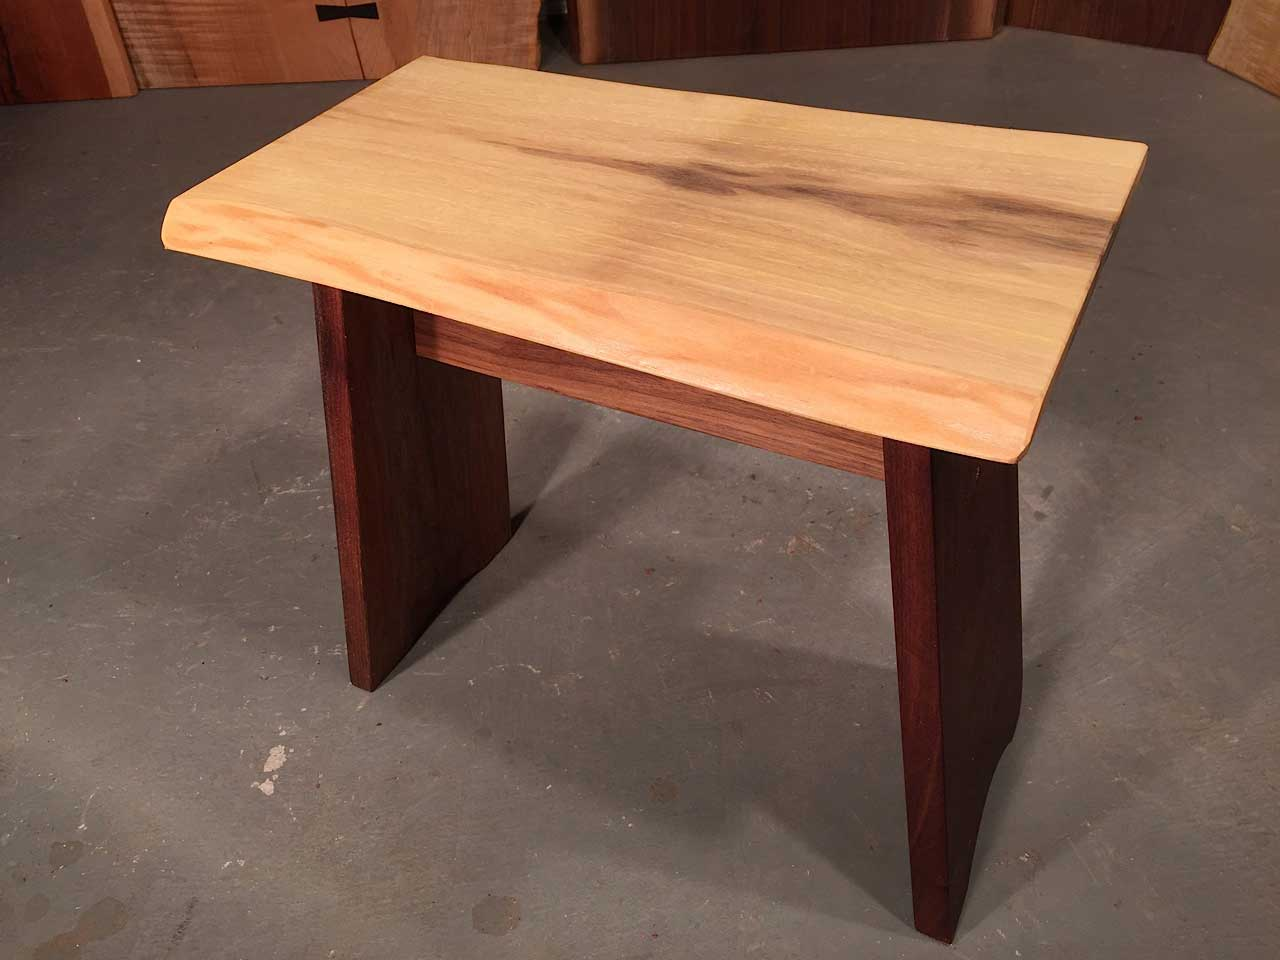 Cream Colored Walnut Live Edge Top With Solid Walnut Legs